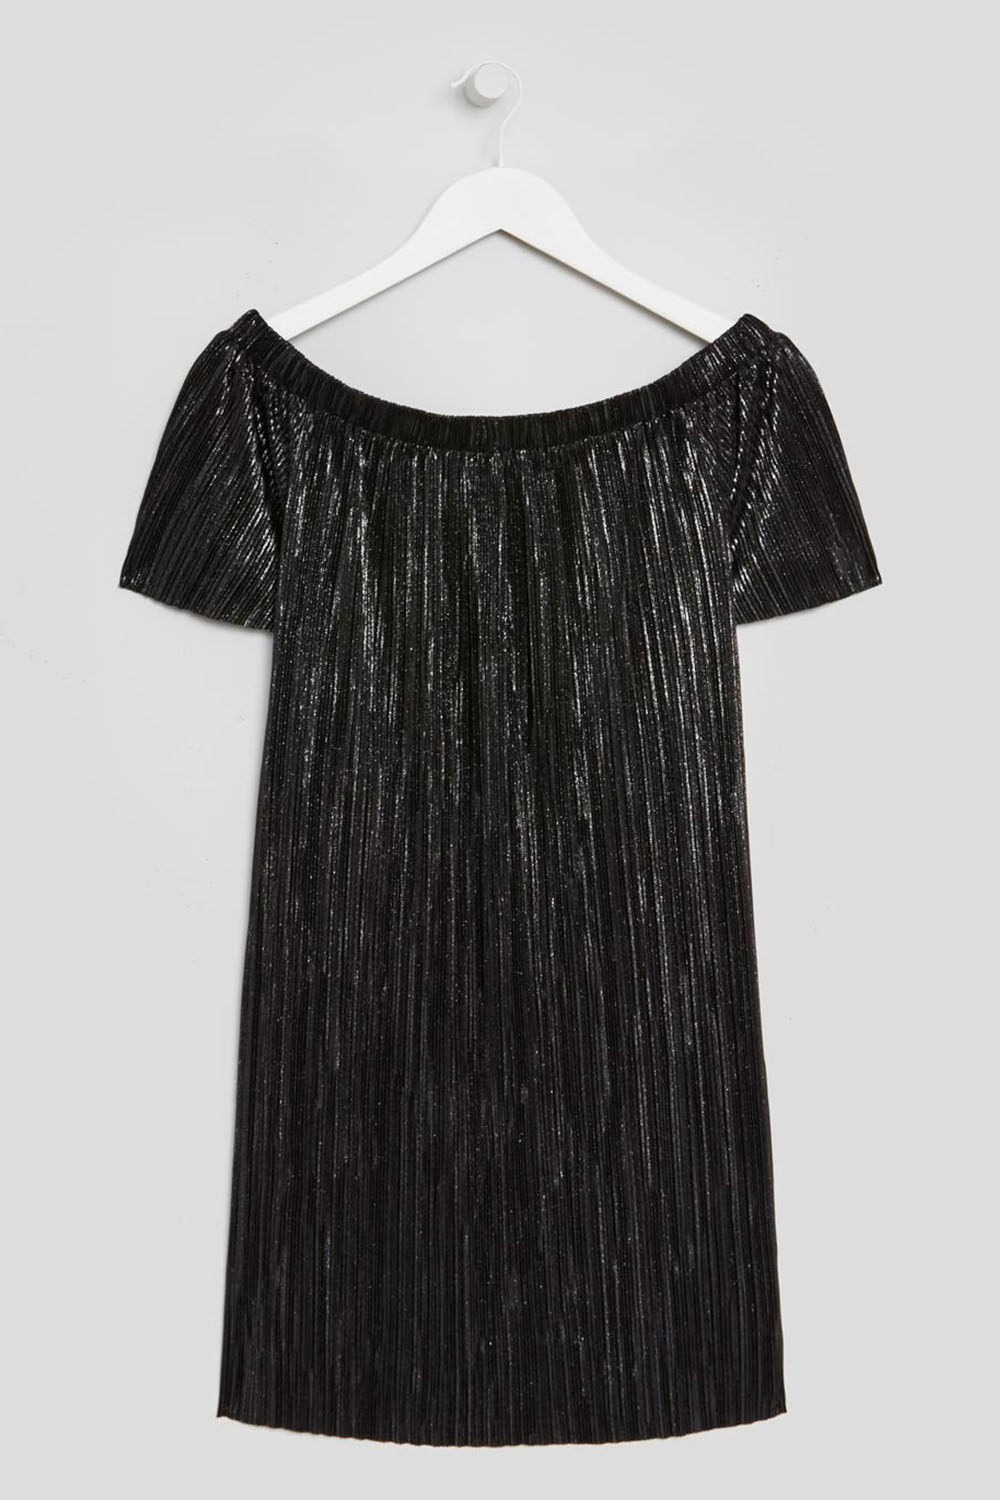 Wedding Winter Wedding Guest Dresses winter wedding guest outfits inspiration from marie claire